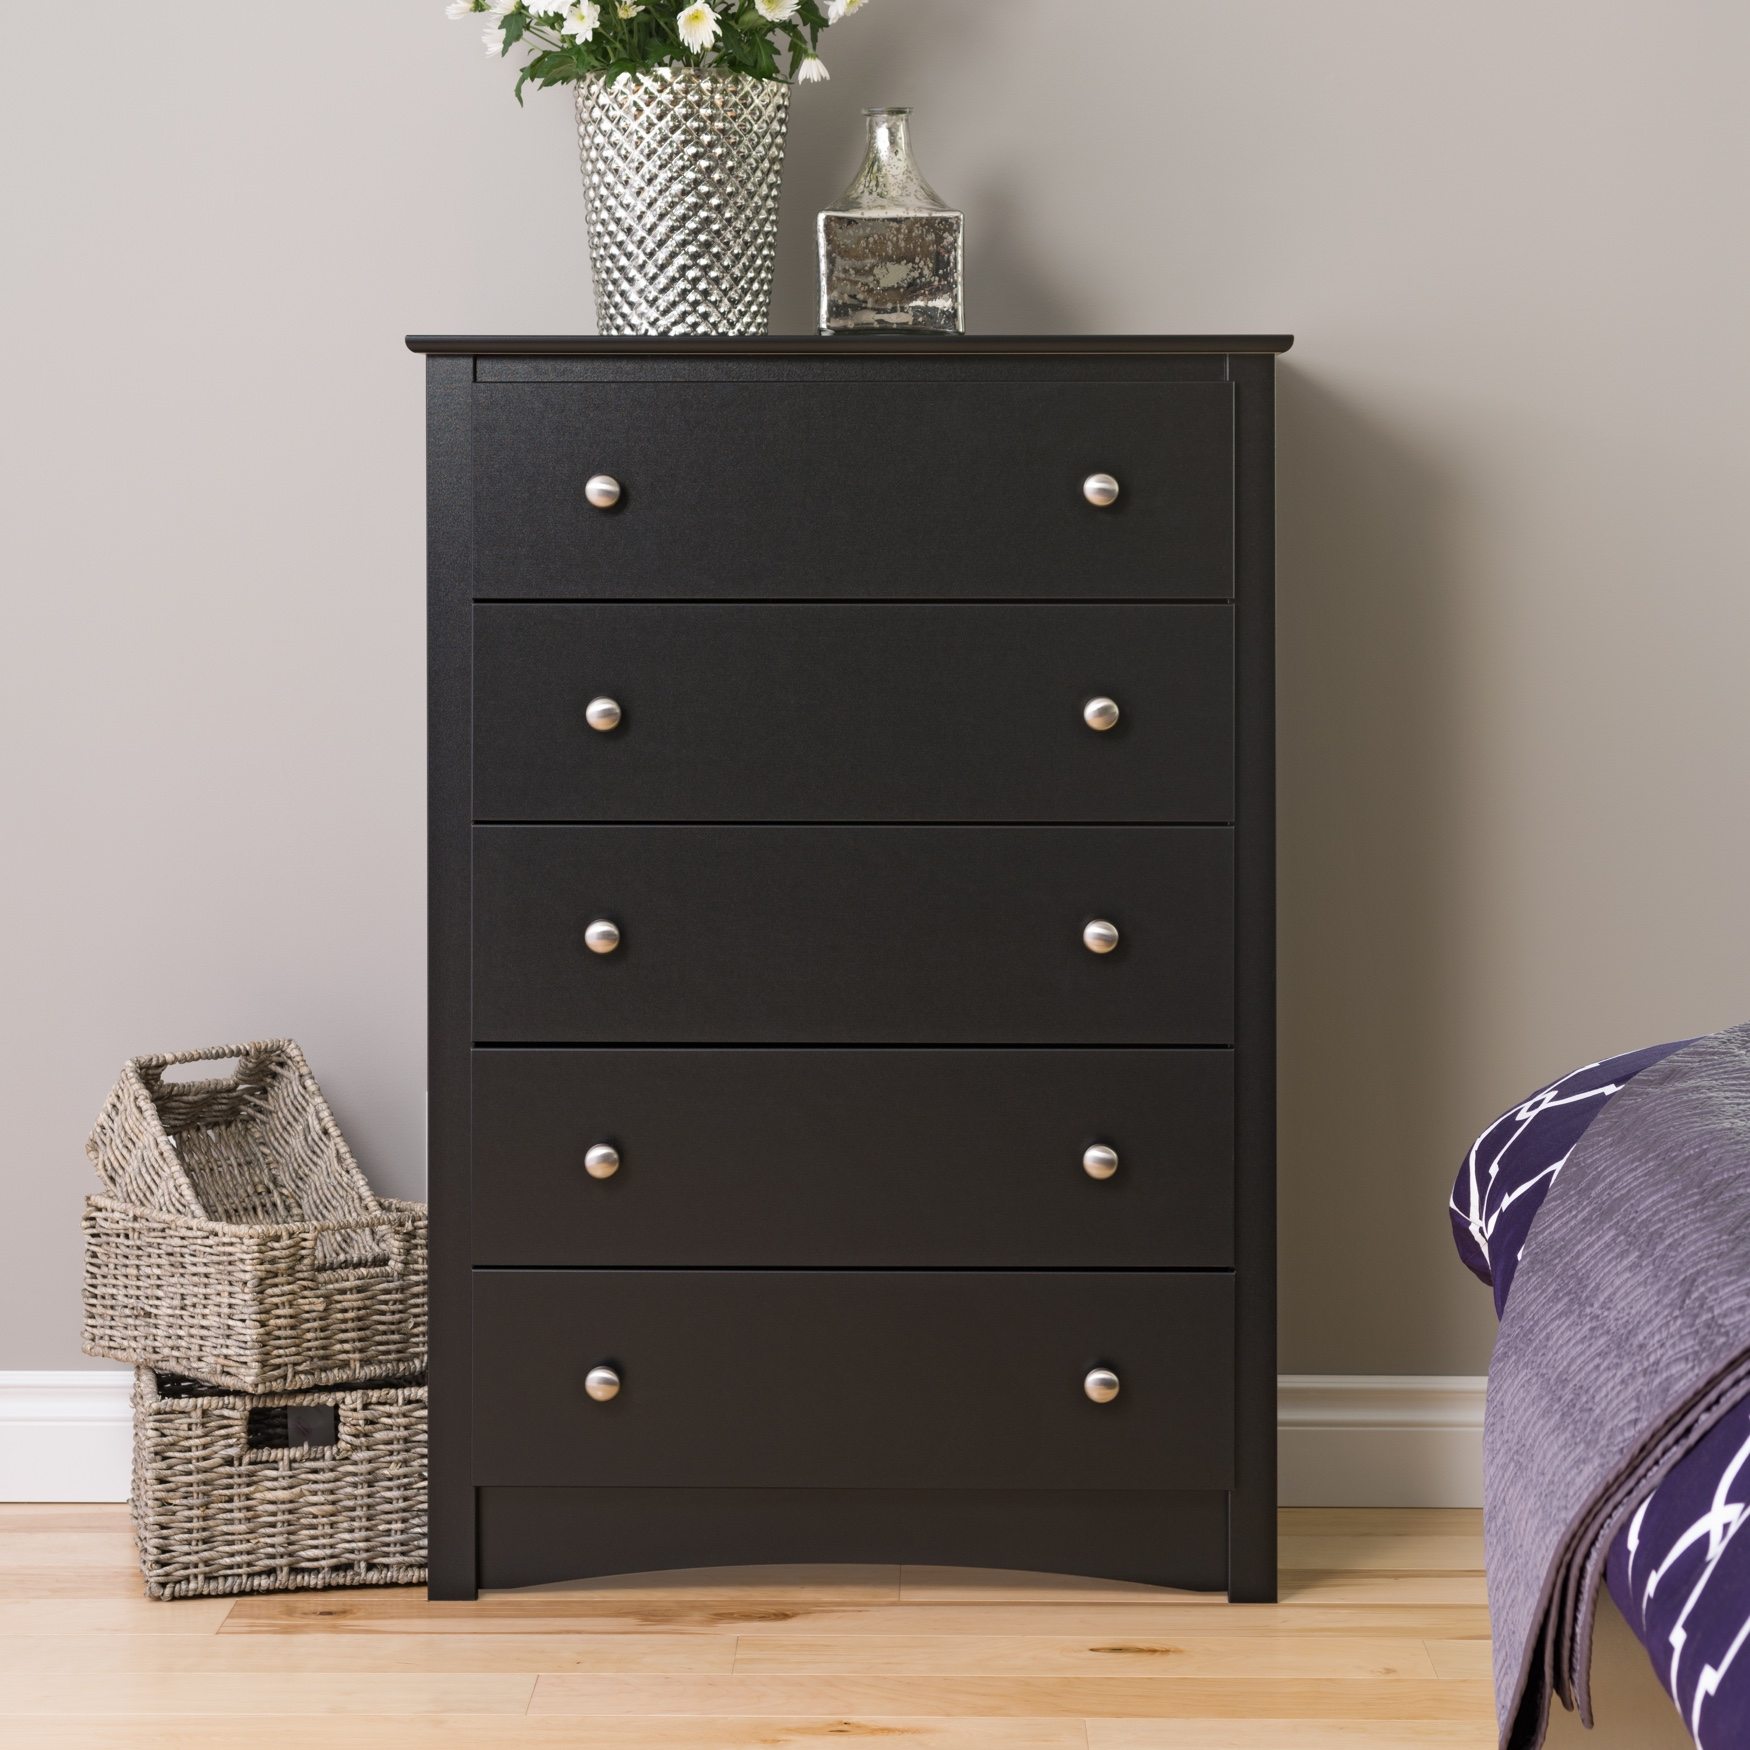 Sonoma 5-Drawer Chest, Black, BLACK